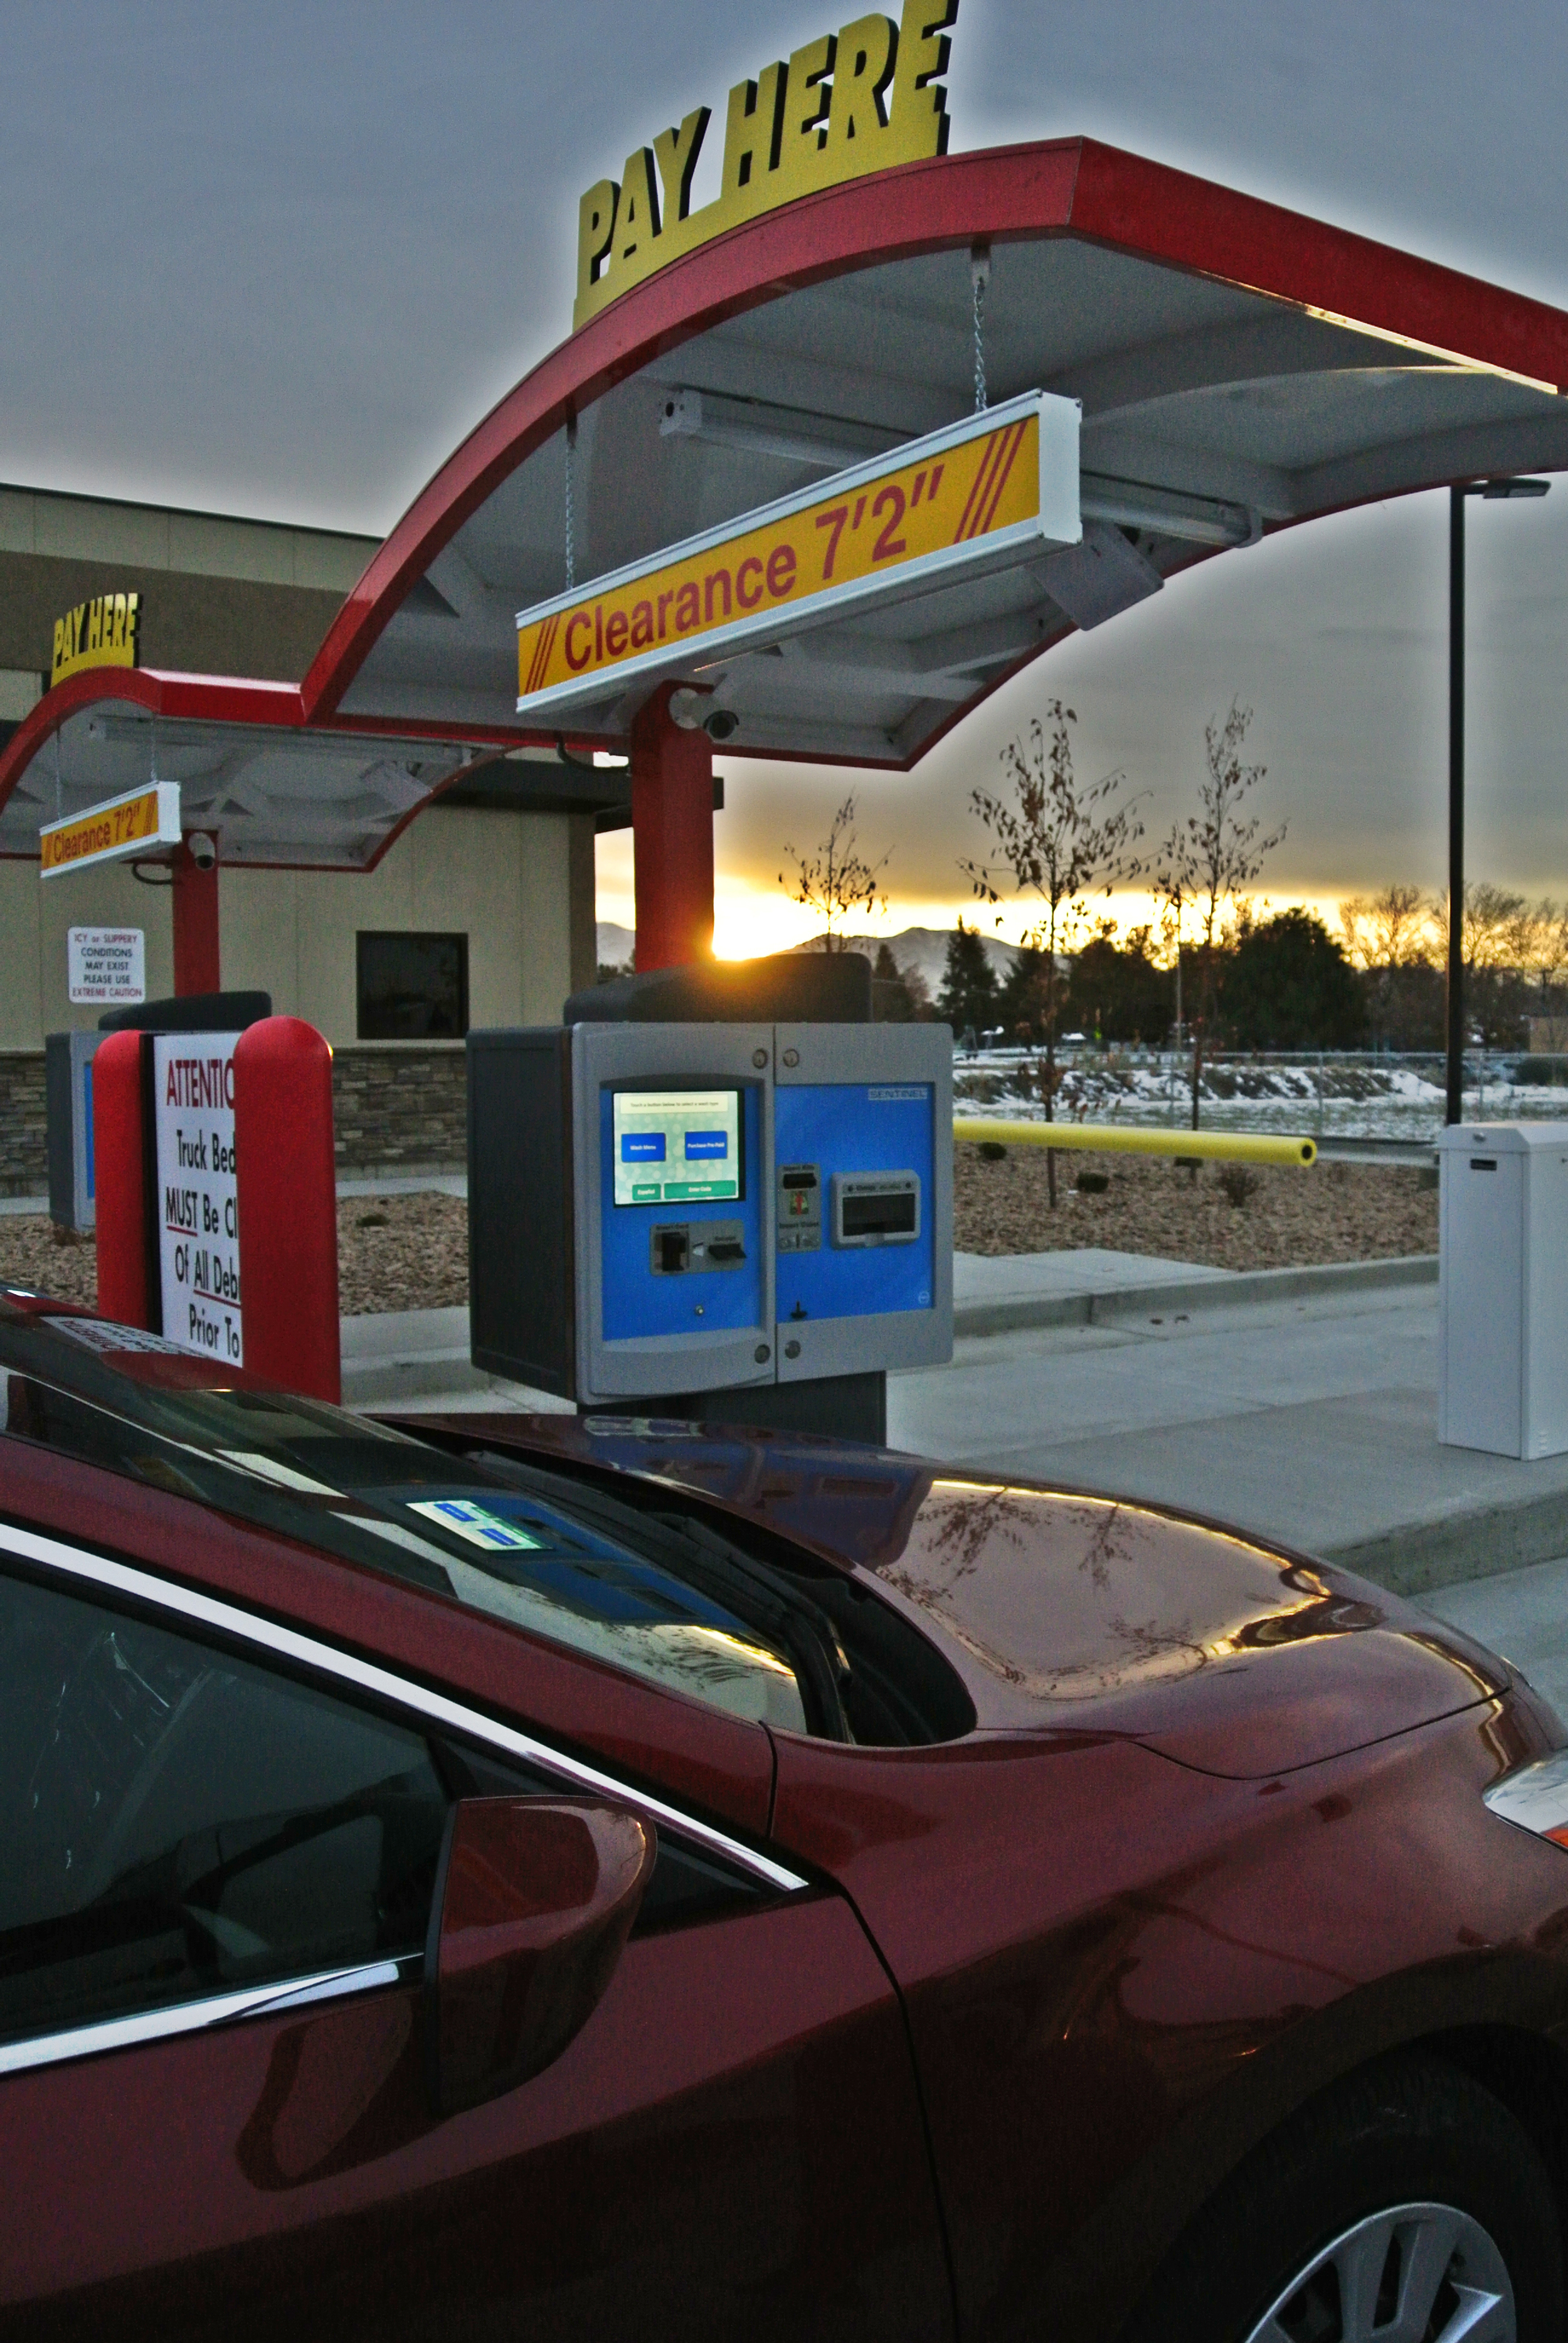 Two Unitec Sentinel pay stations at sunrise